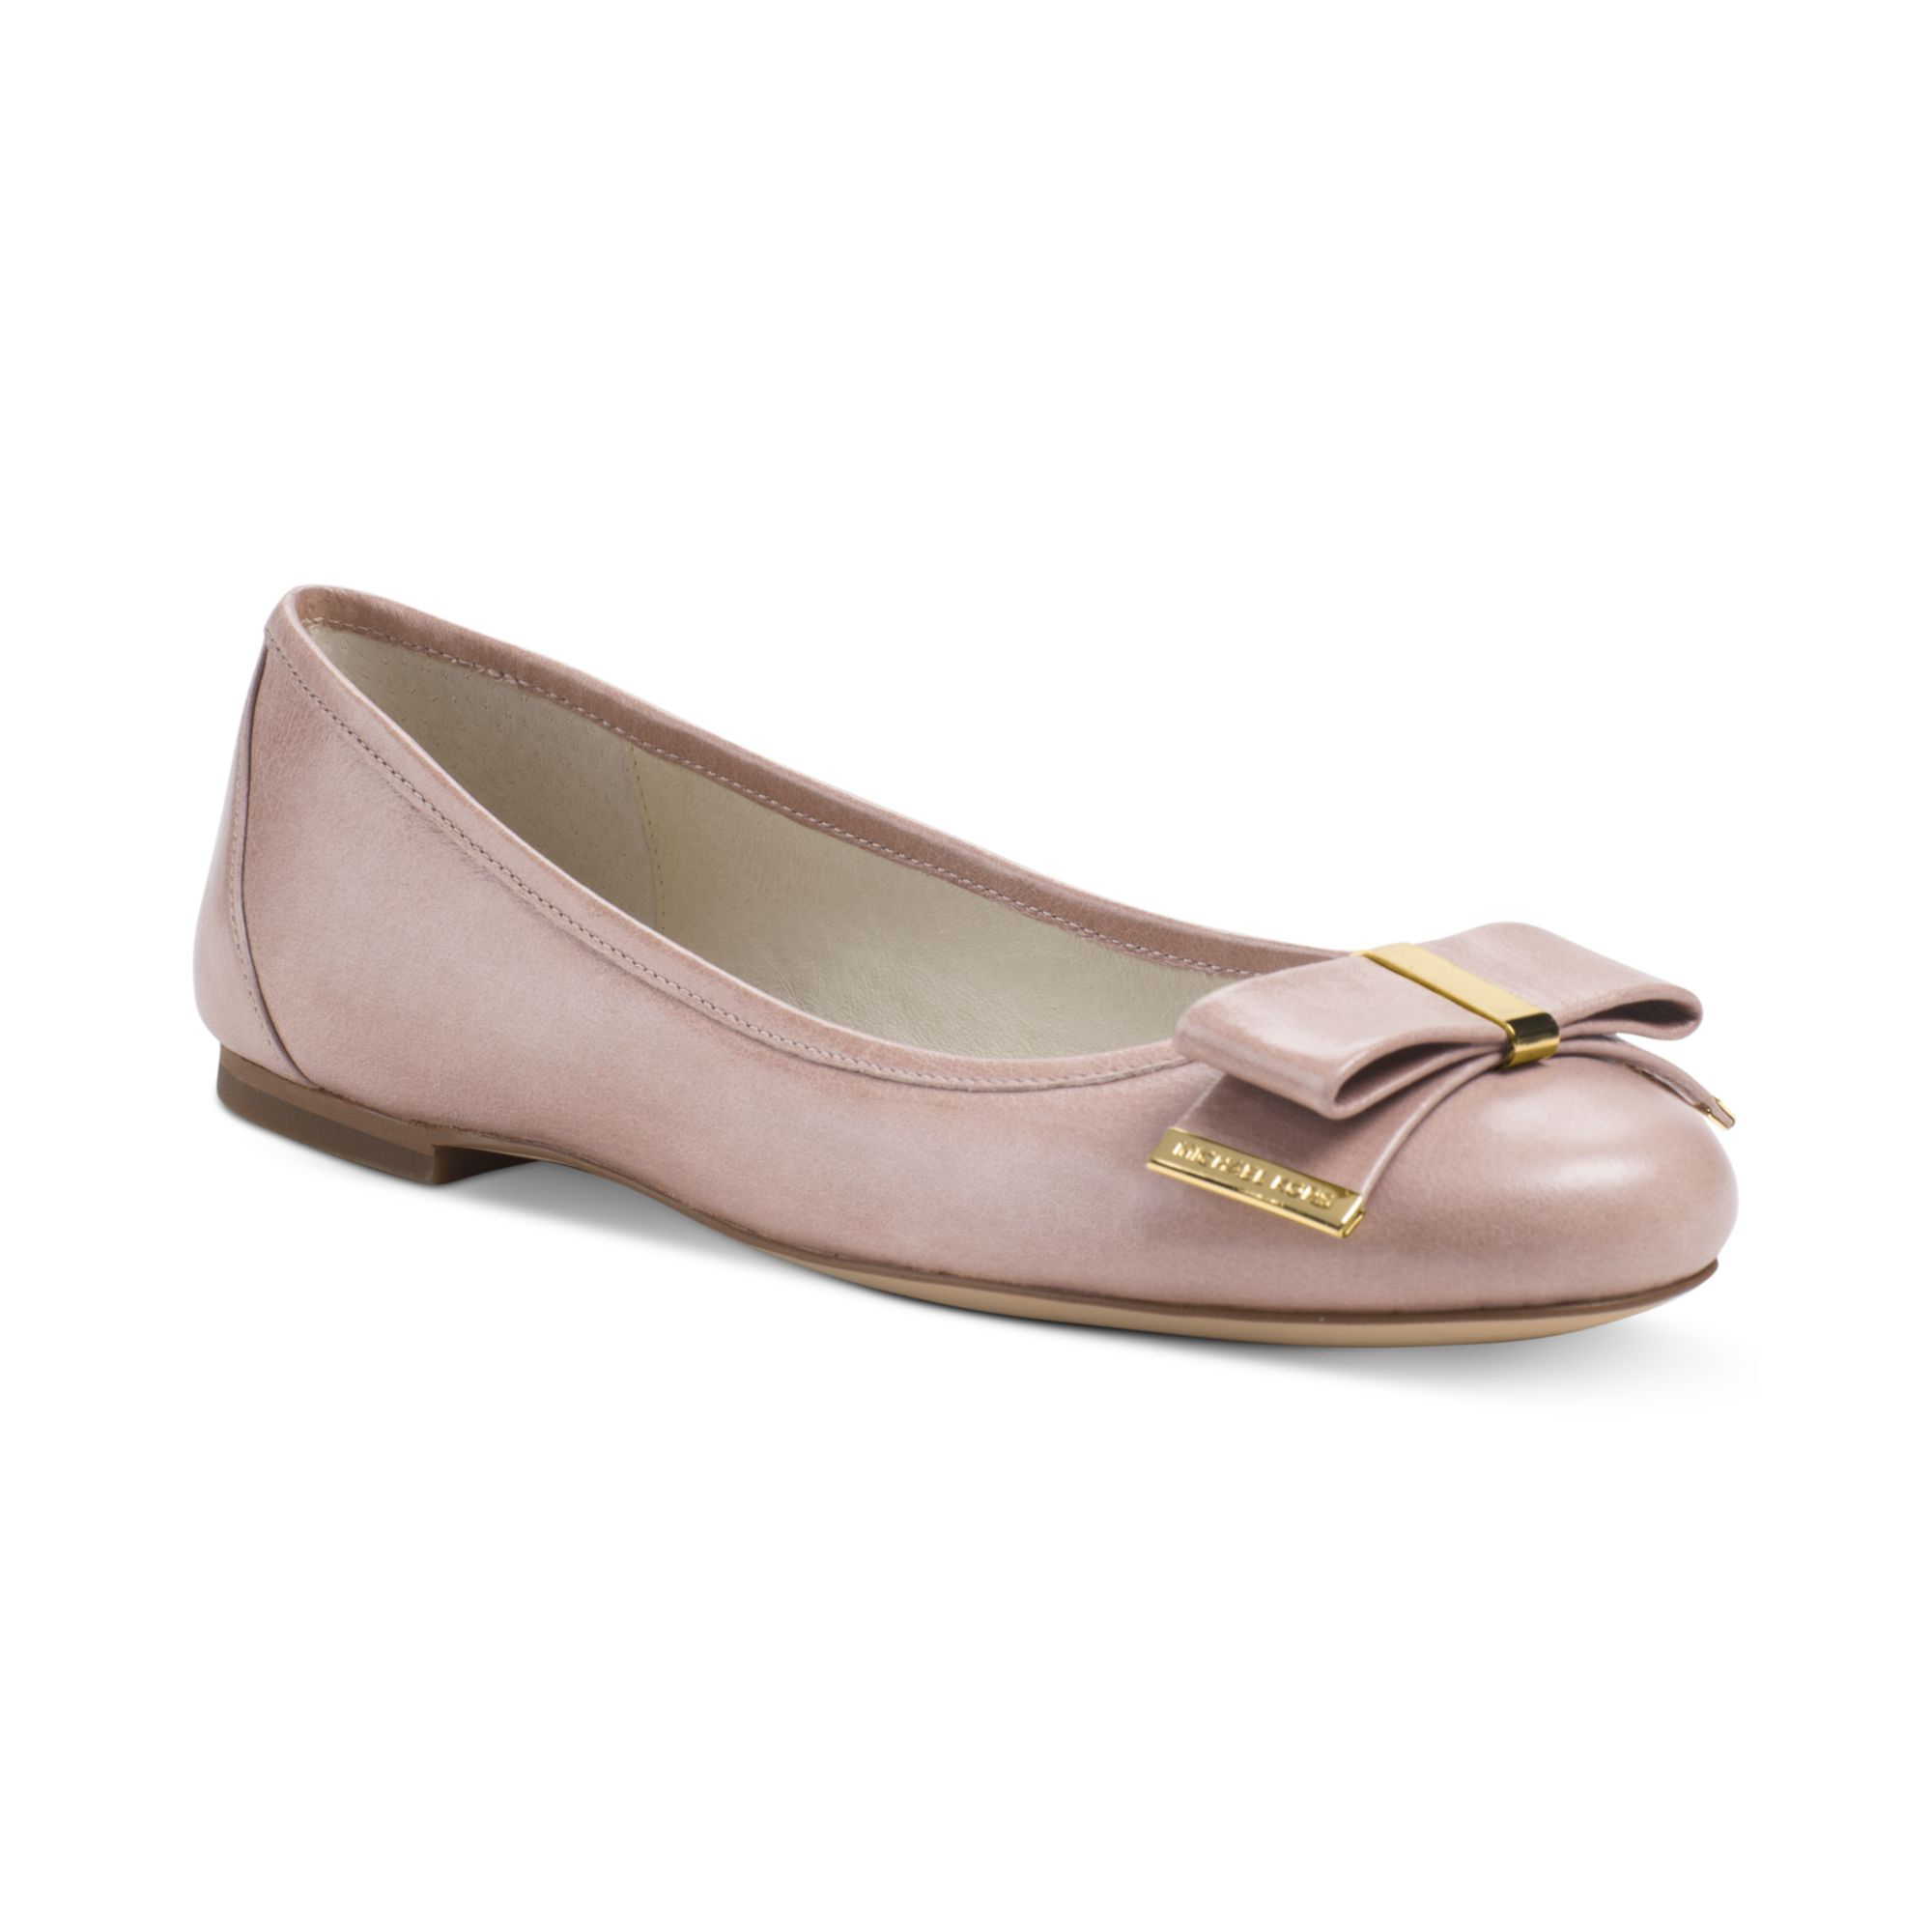 michael kors michael kiera ballet flats in beige dark nude lyst. Black Bedroom Furniture Sets. Home Design Ideas